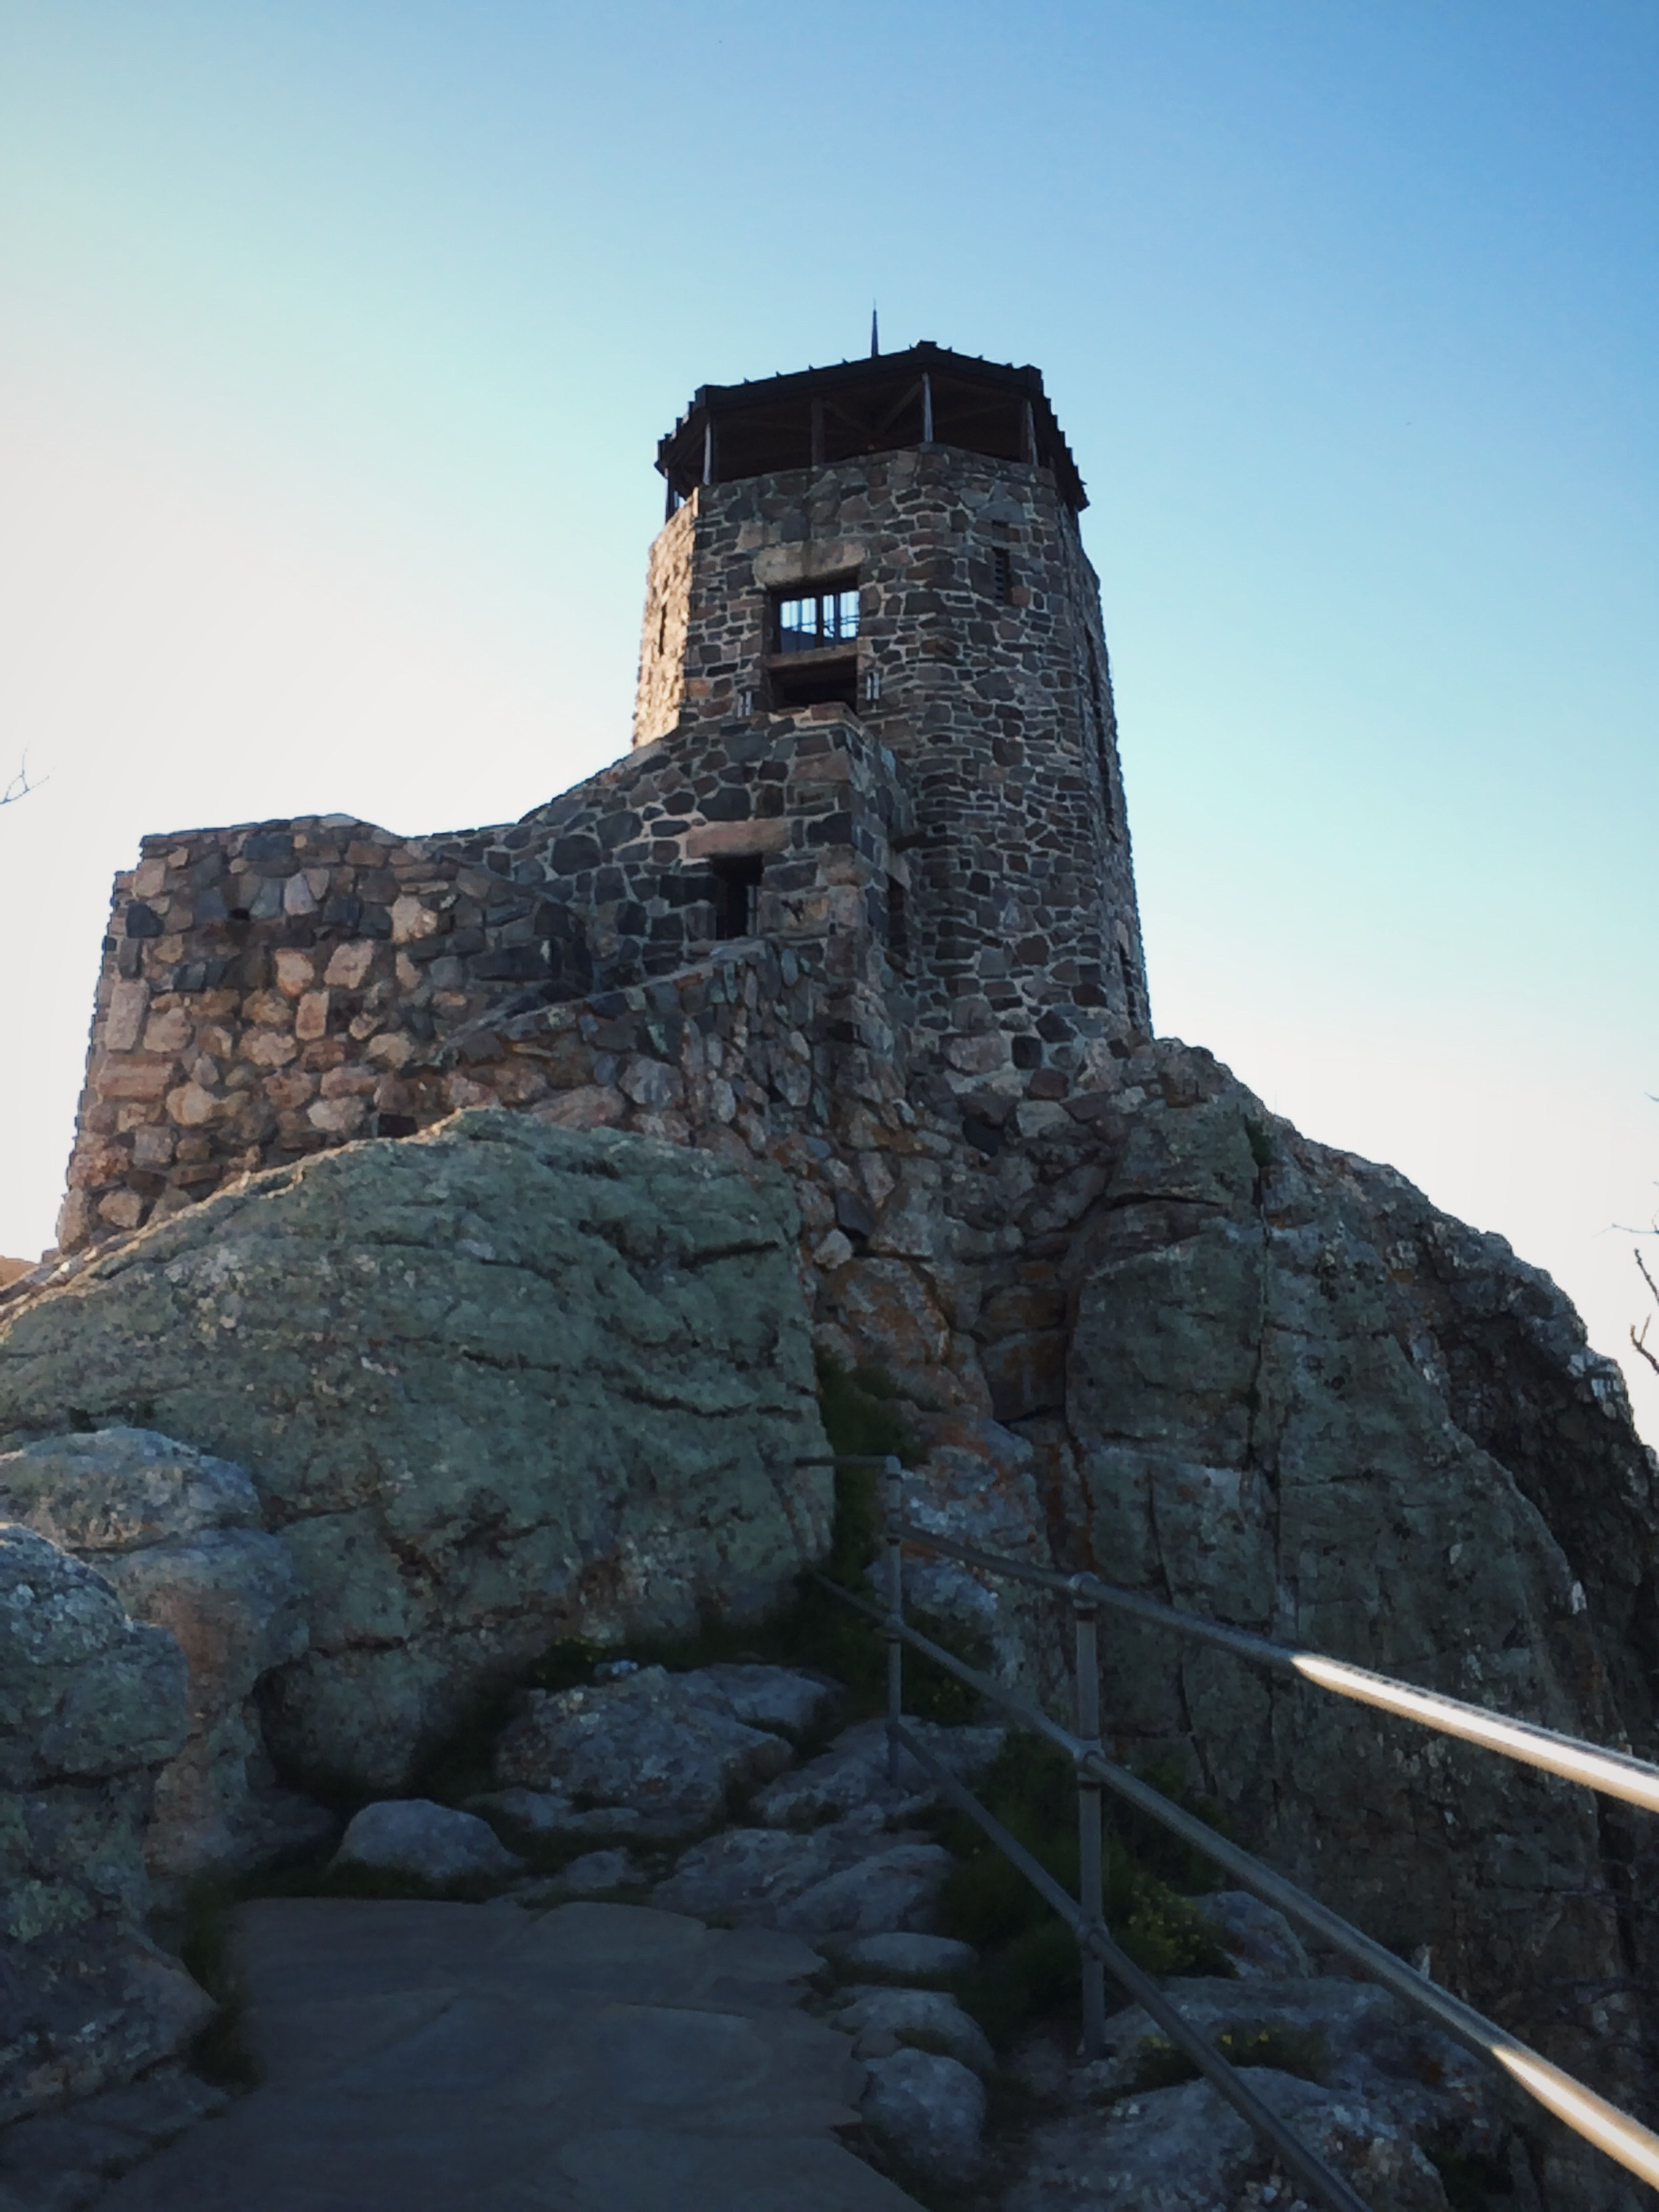 At the top of Harney Peak. The Civilian Conservation Corps finished the fire tower in 1938.